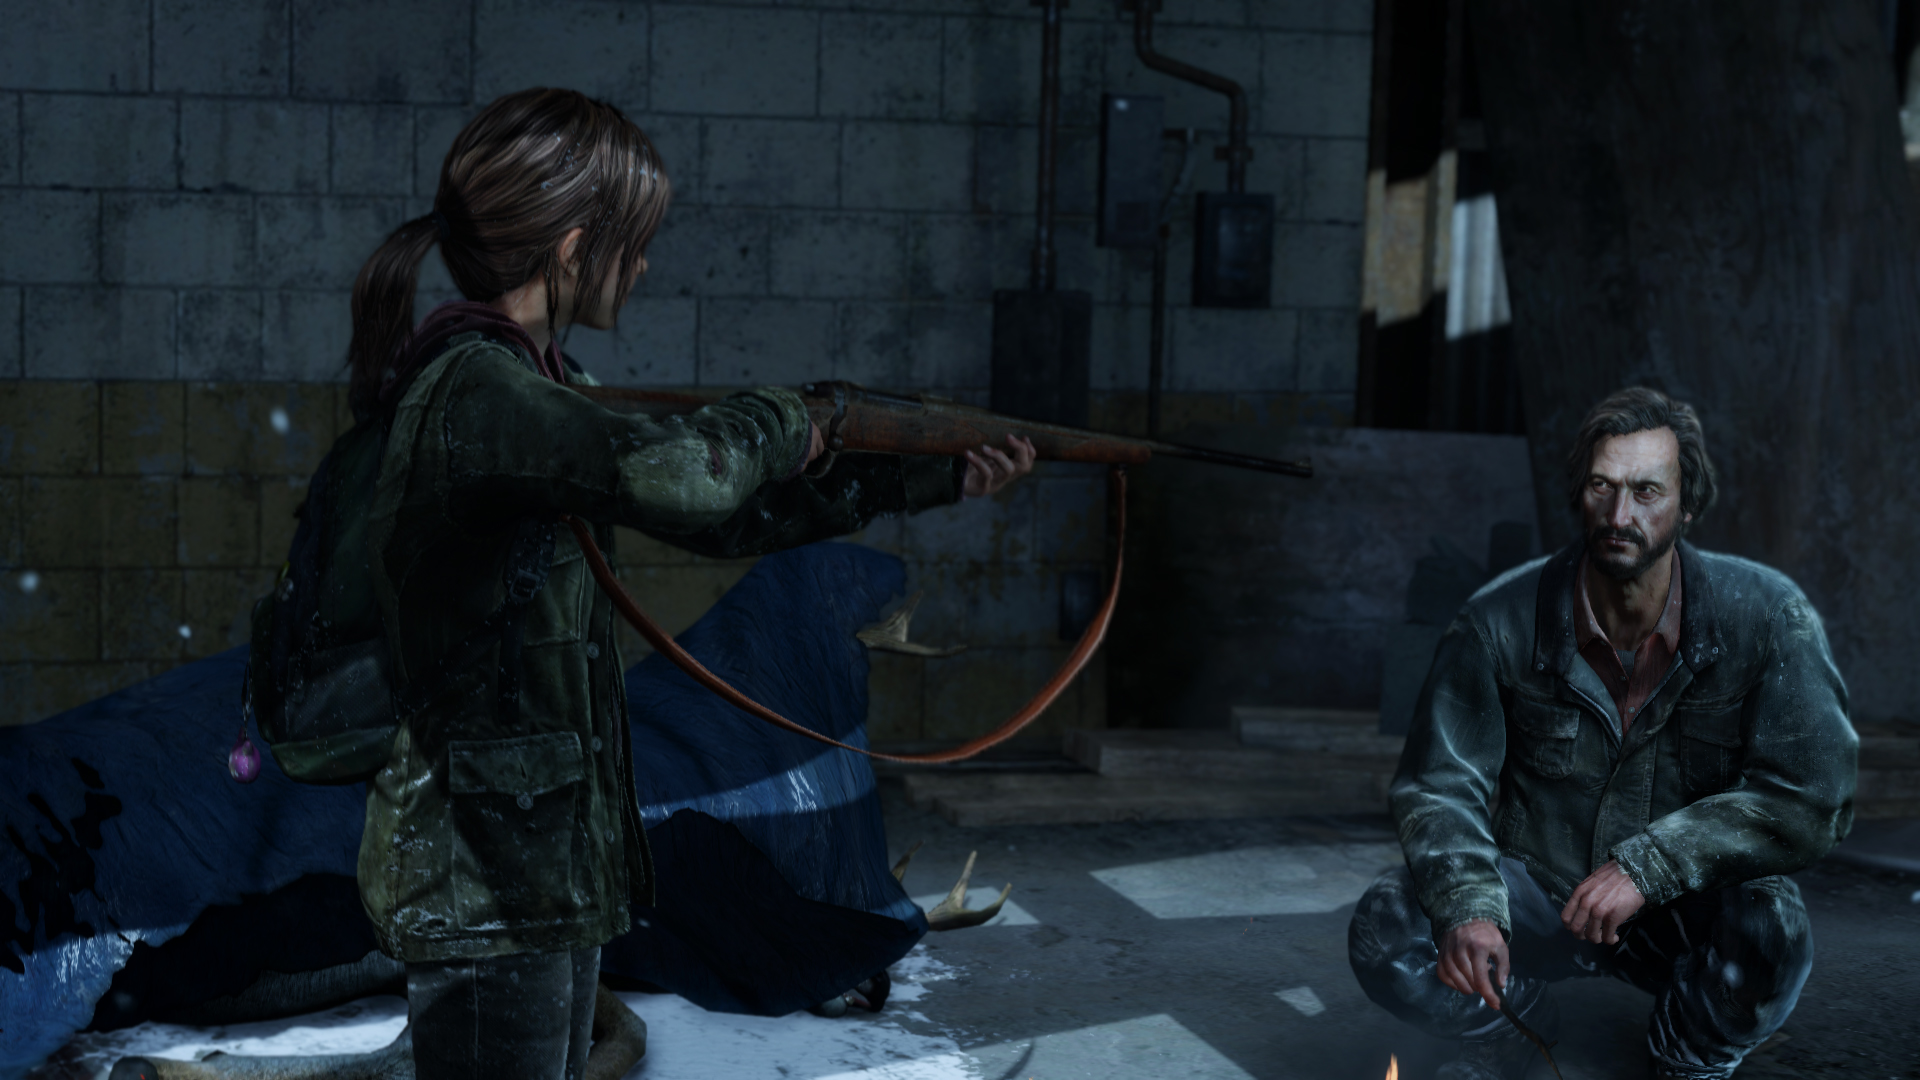 Check Out The First 1080p Screenshots of The Last of Us Remastered for PS4 - Page 2 - NextGenUpdate